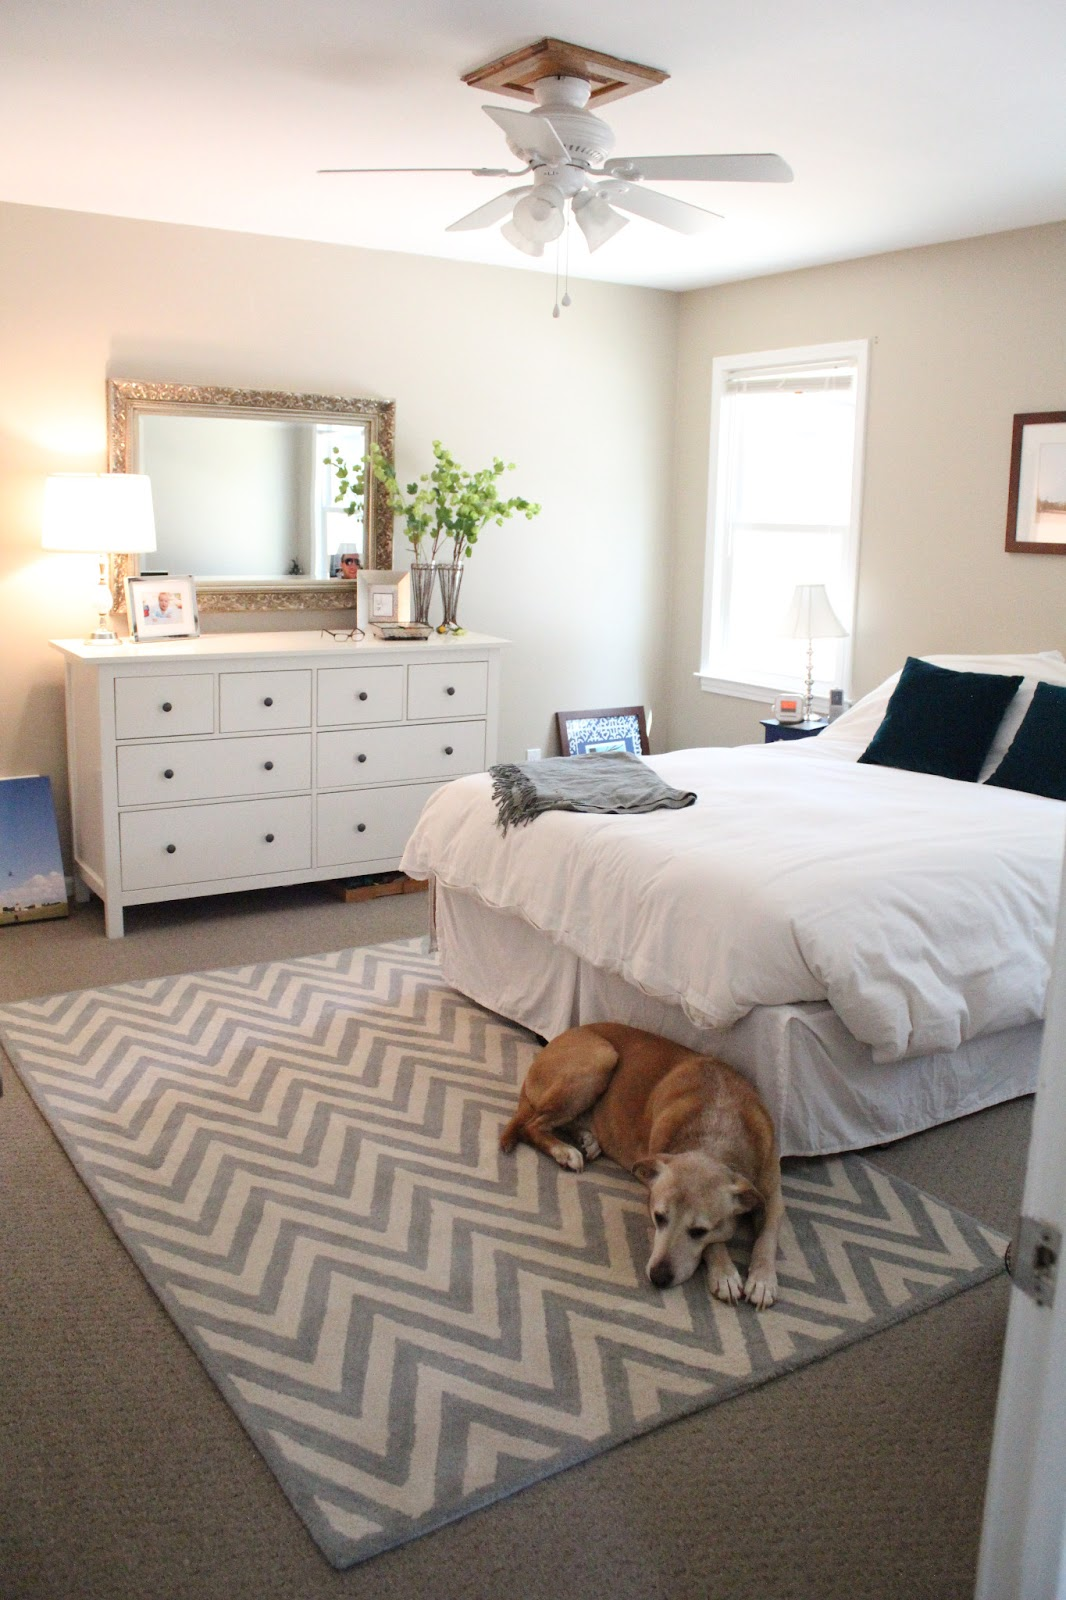 Ten june our rental house a master bedroom tour Rental home design ideas